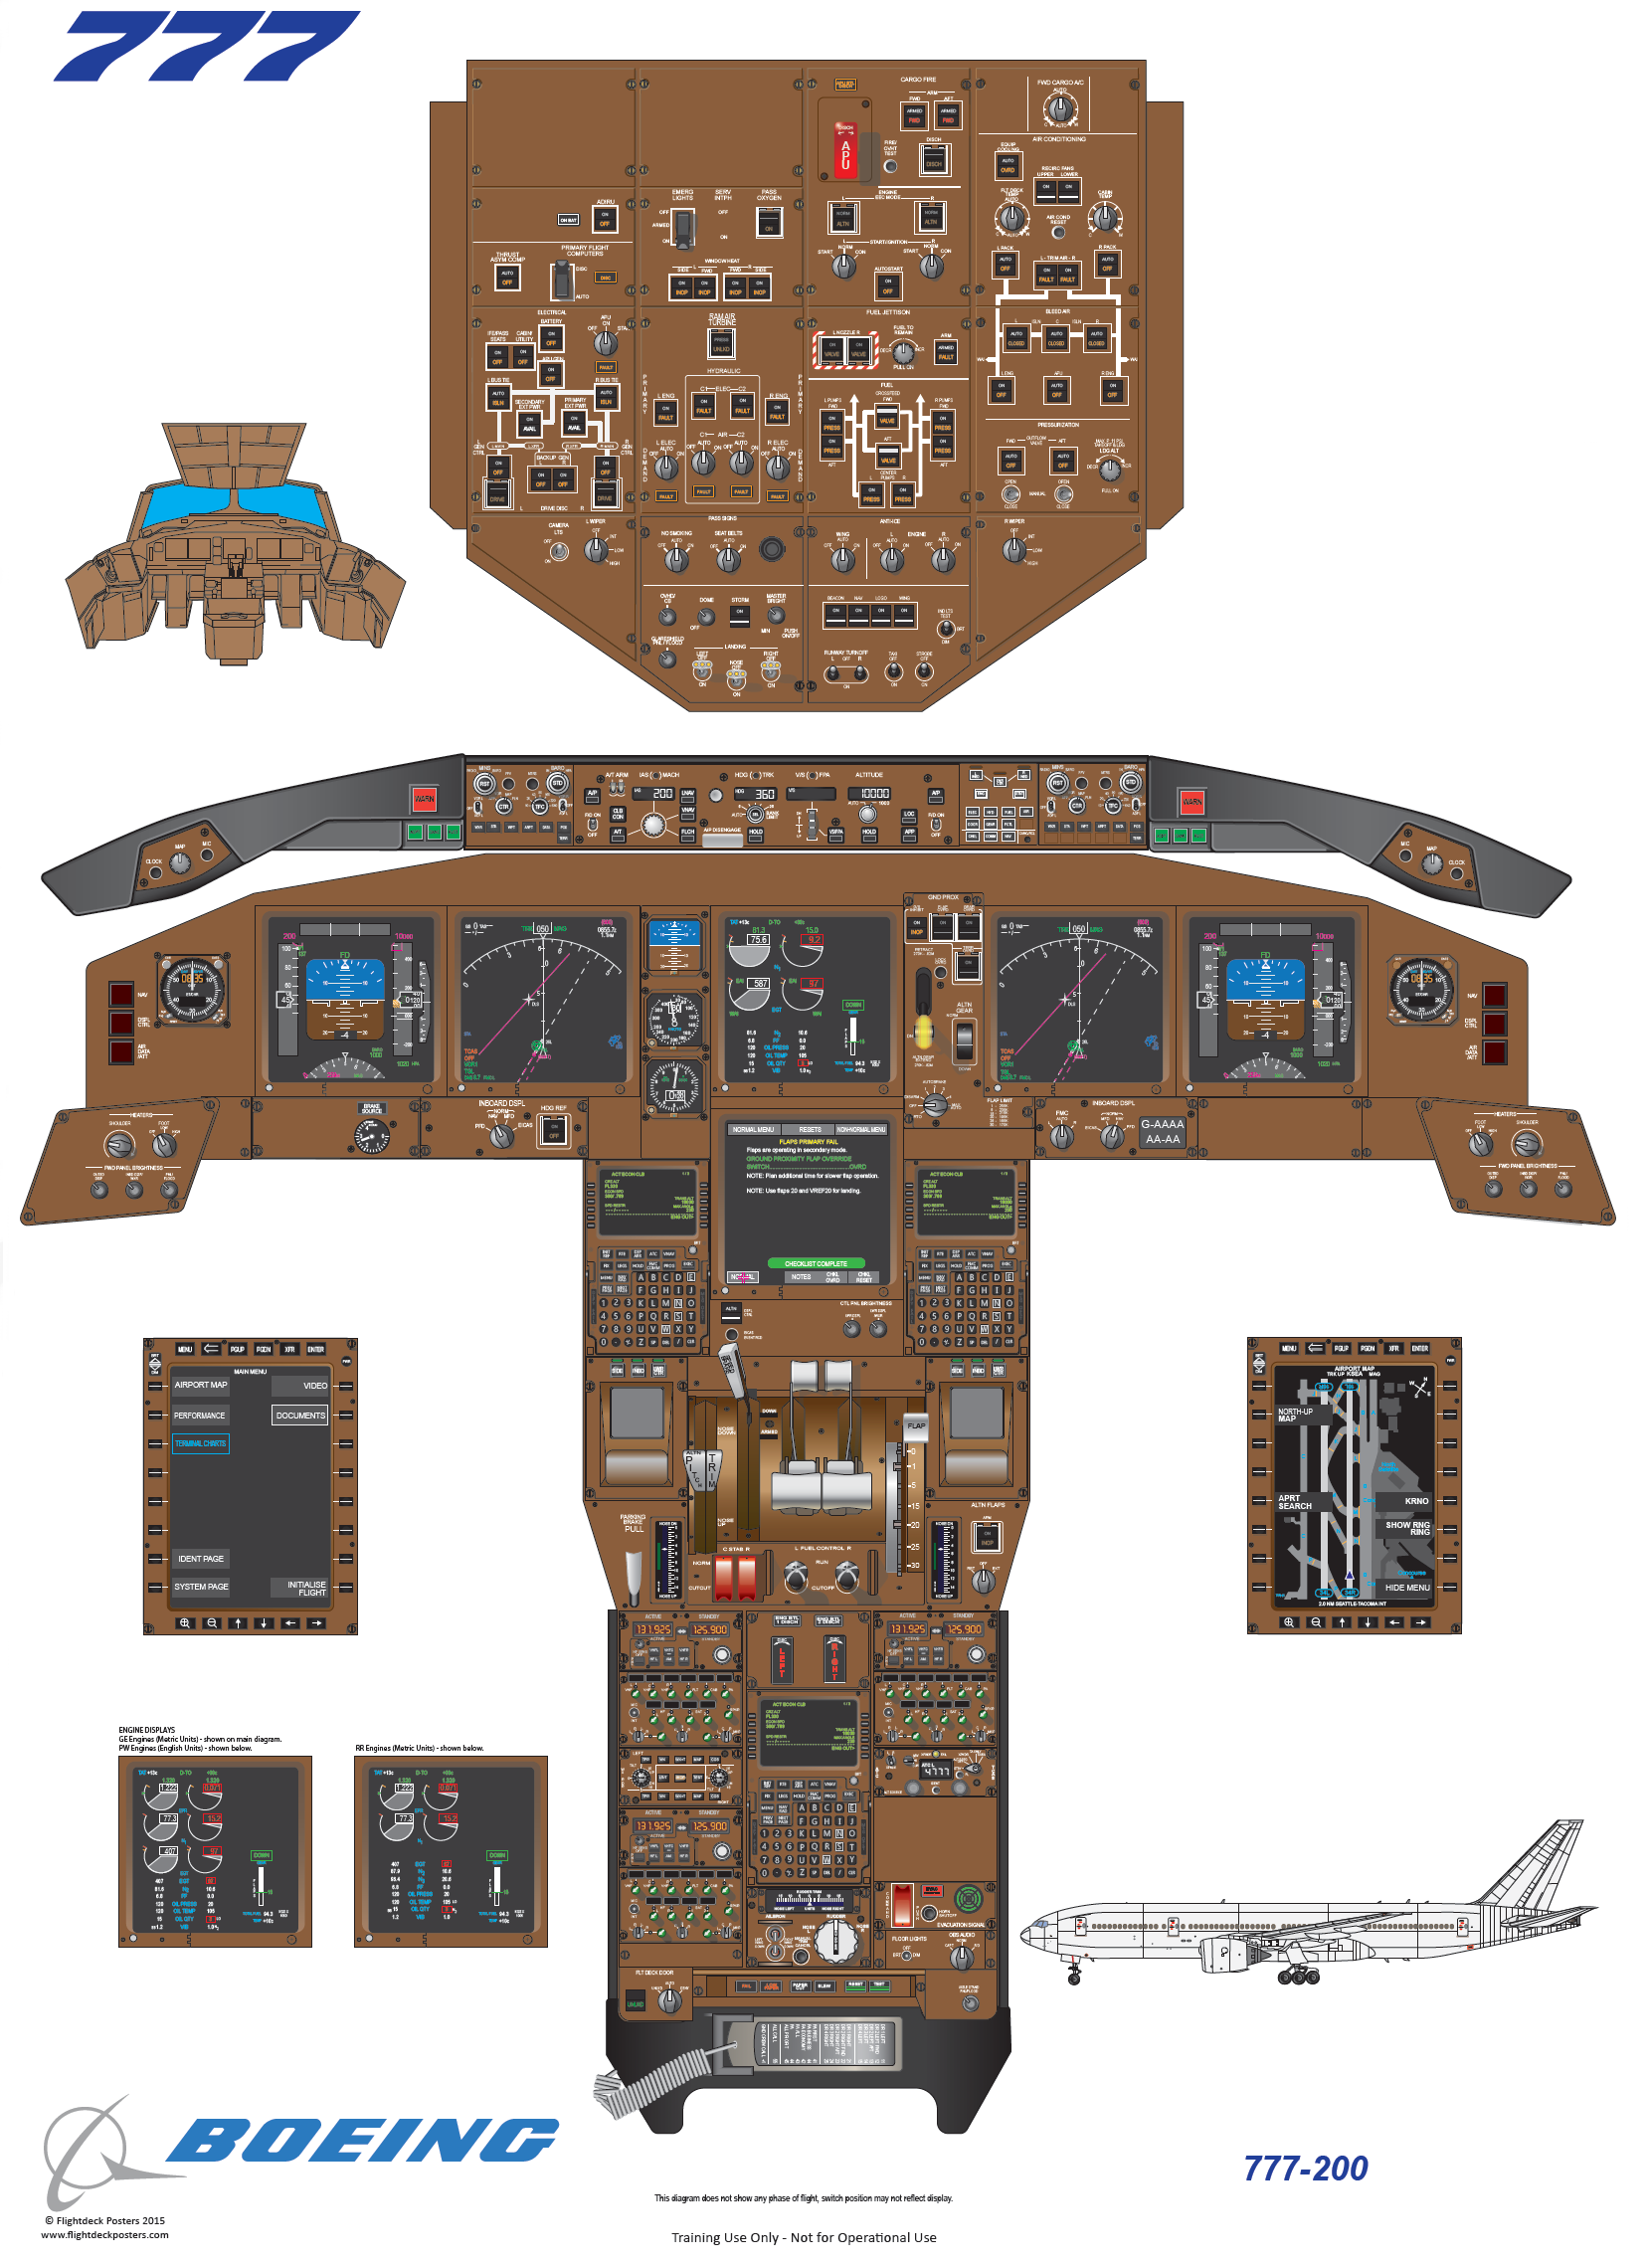 Boeing 777 cockpit diagram used for training pilots | Aircrafts